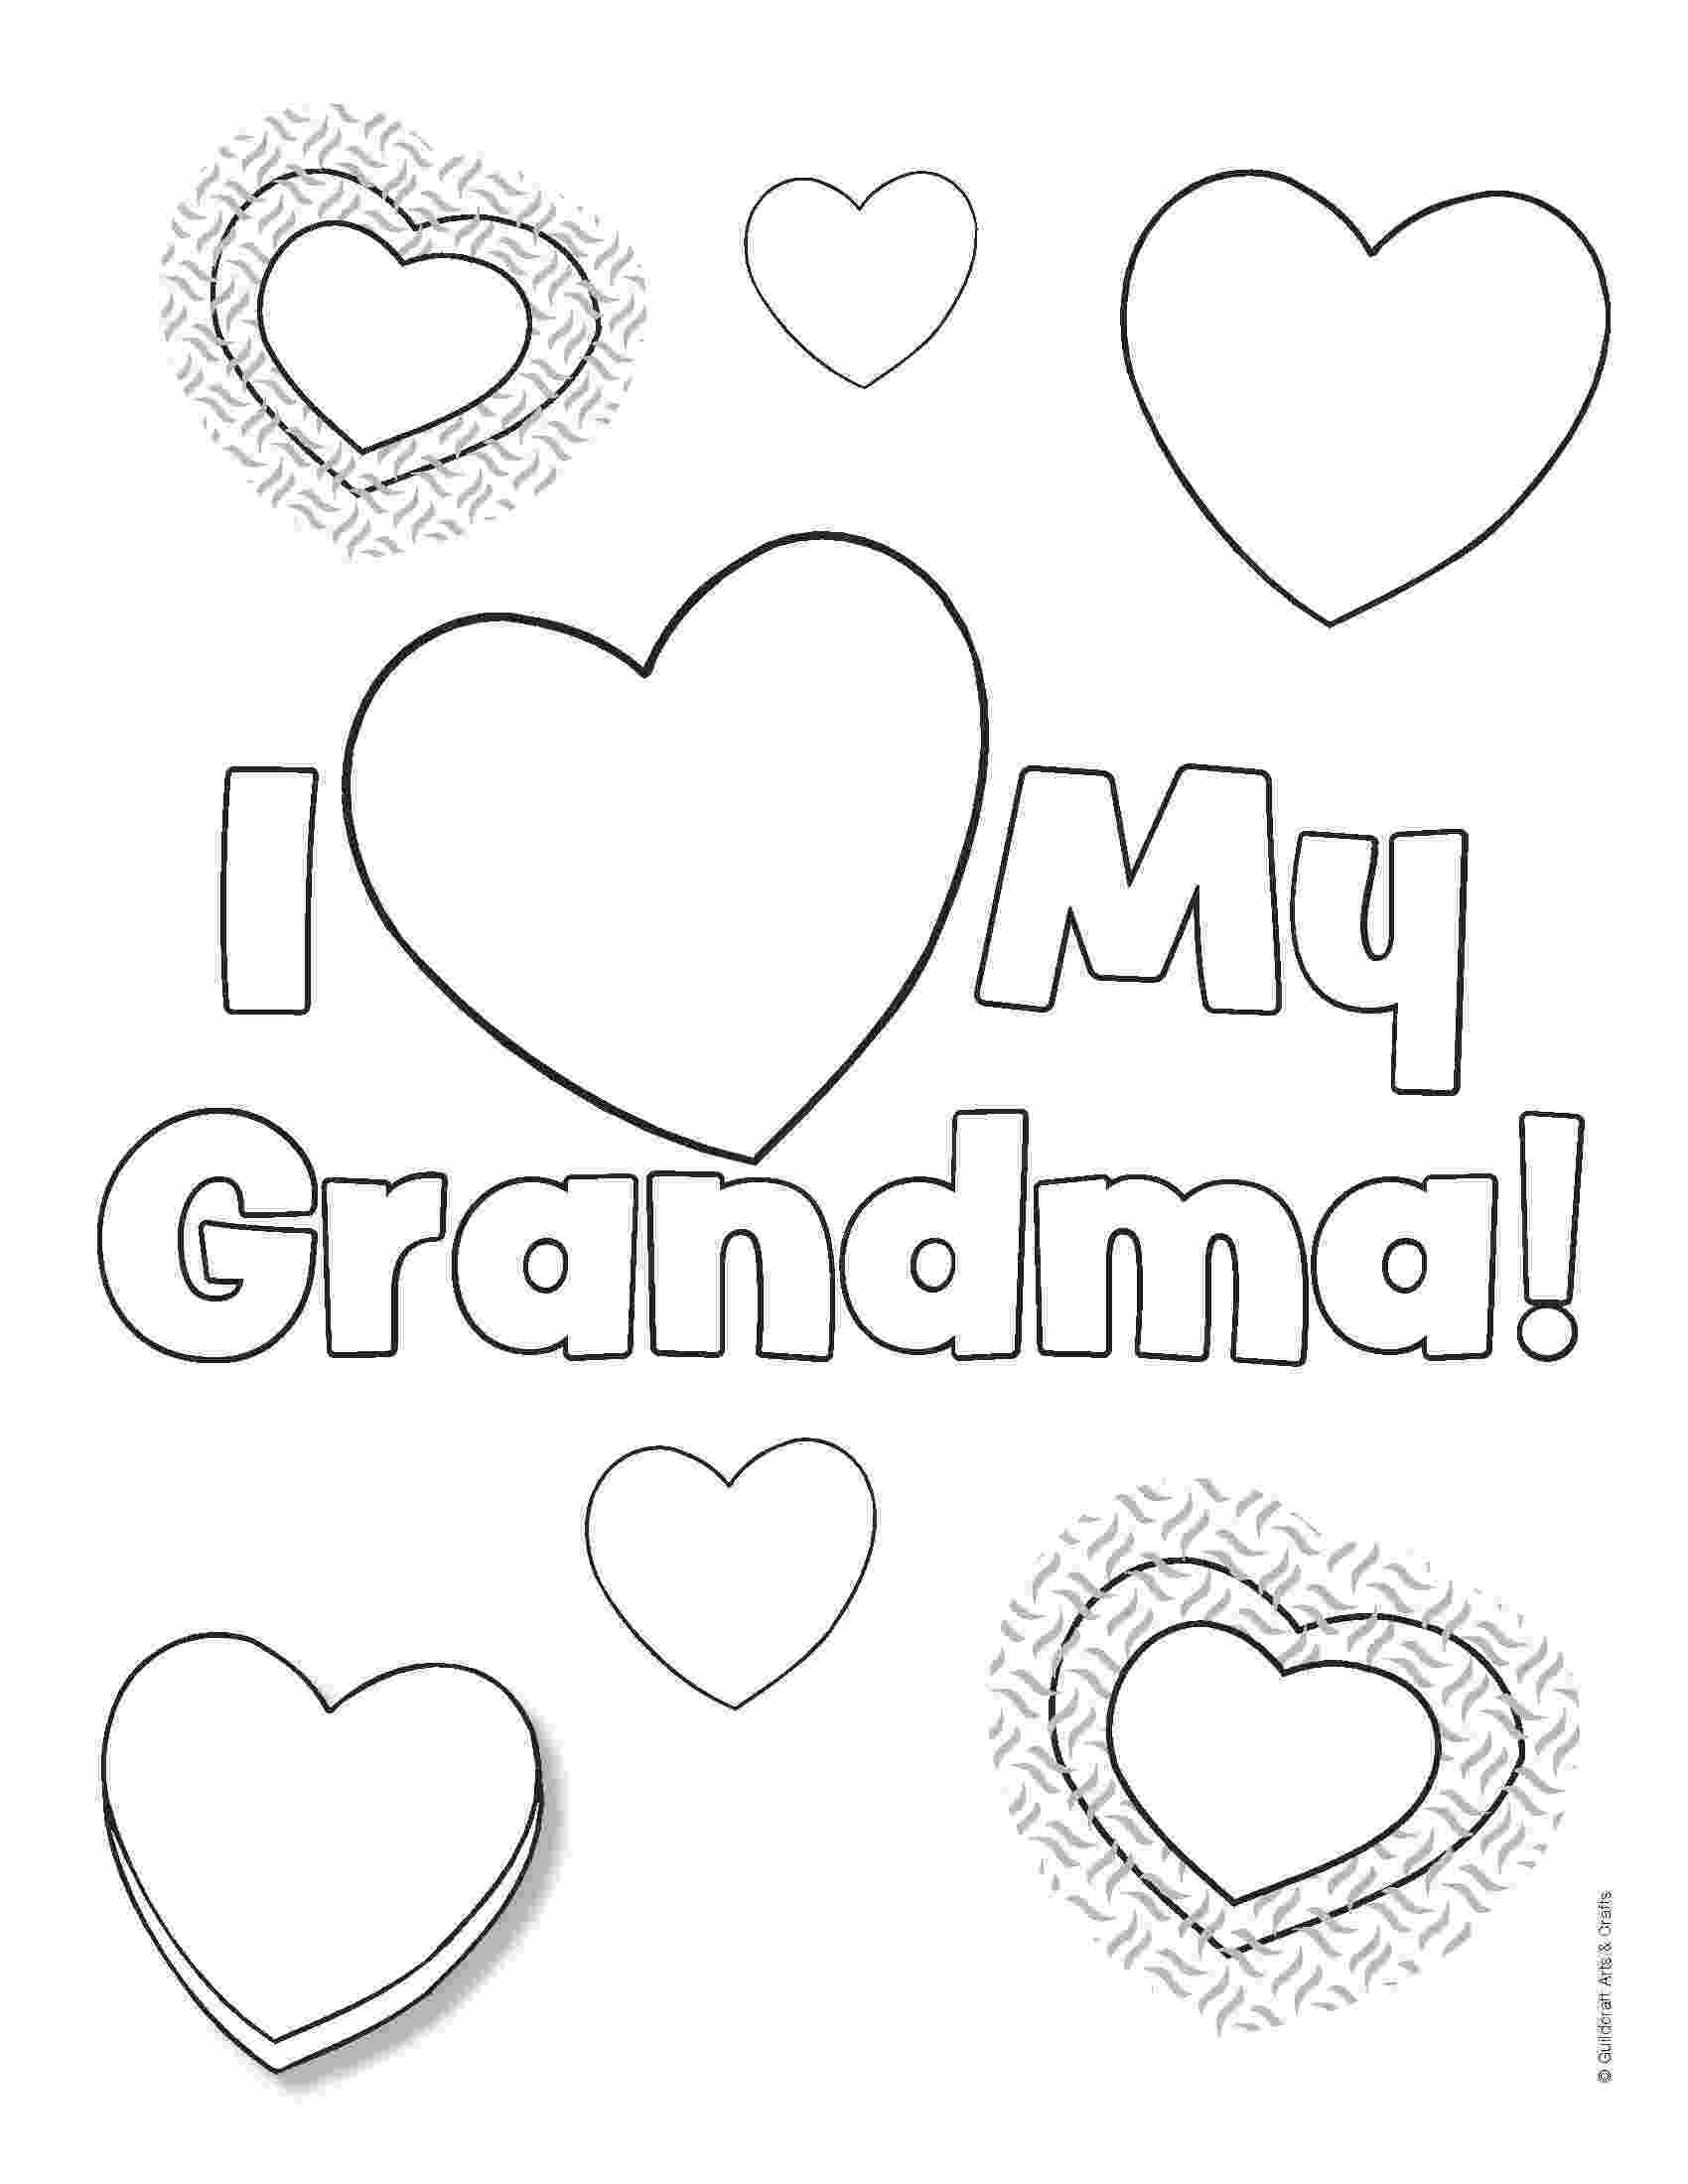 printable grandparents day cards to color grandparents day coloring cards free coloring pages printable color grandparents day cards to